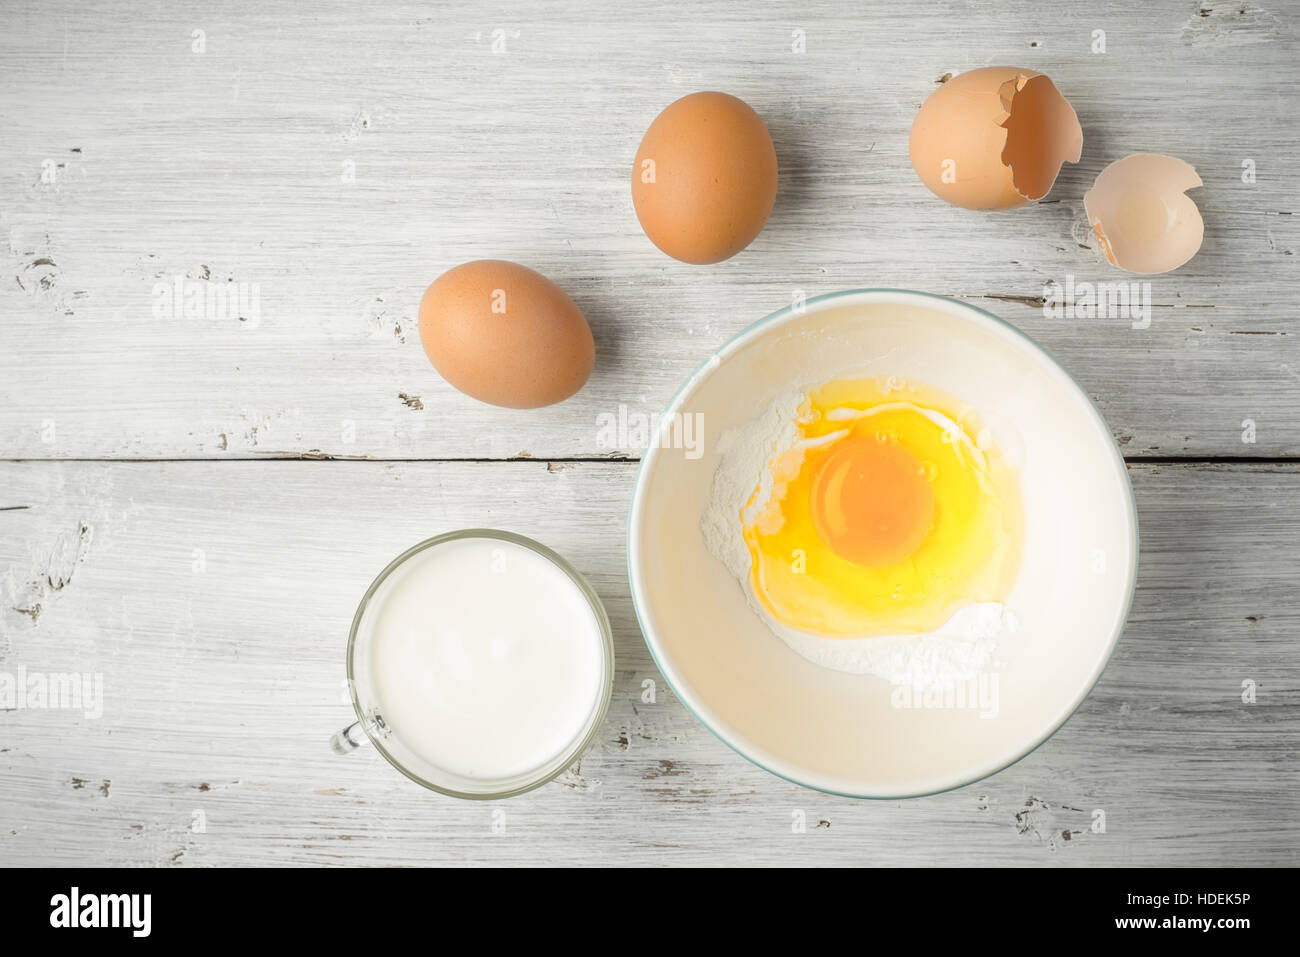 milk dairy yogurt egg cornstarch ingredient bowl - Stock Image